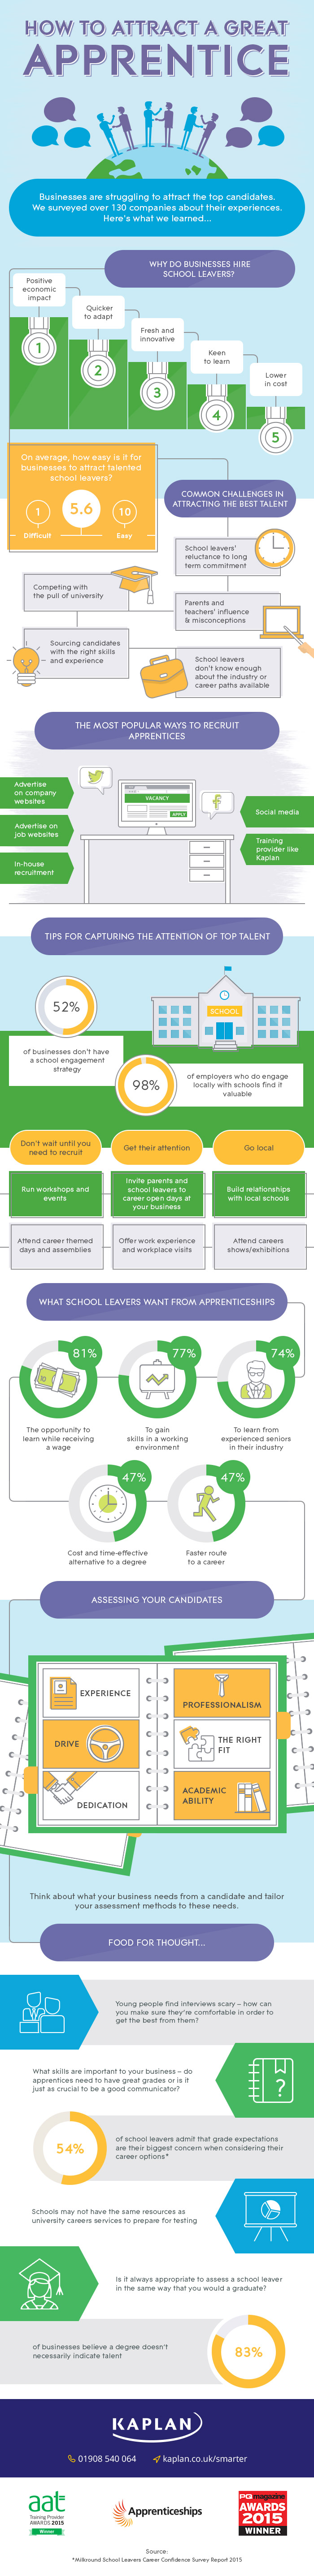 Infographic about attracting and recruiting great apprentices